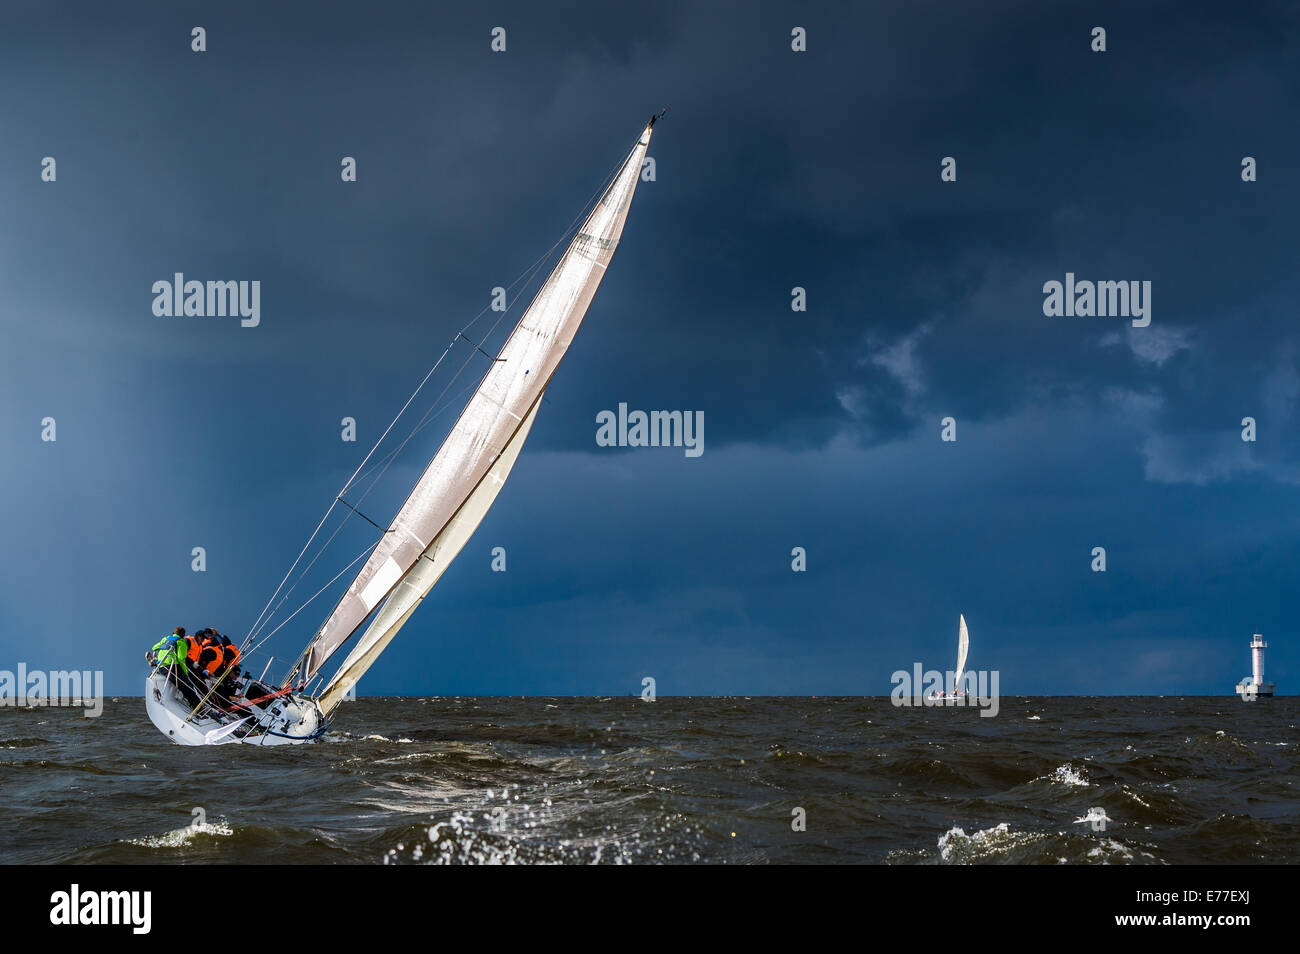 Sailing in a gale - Stock Image